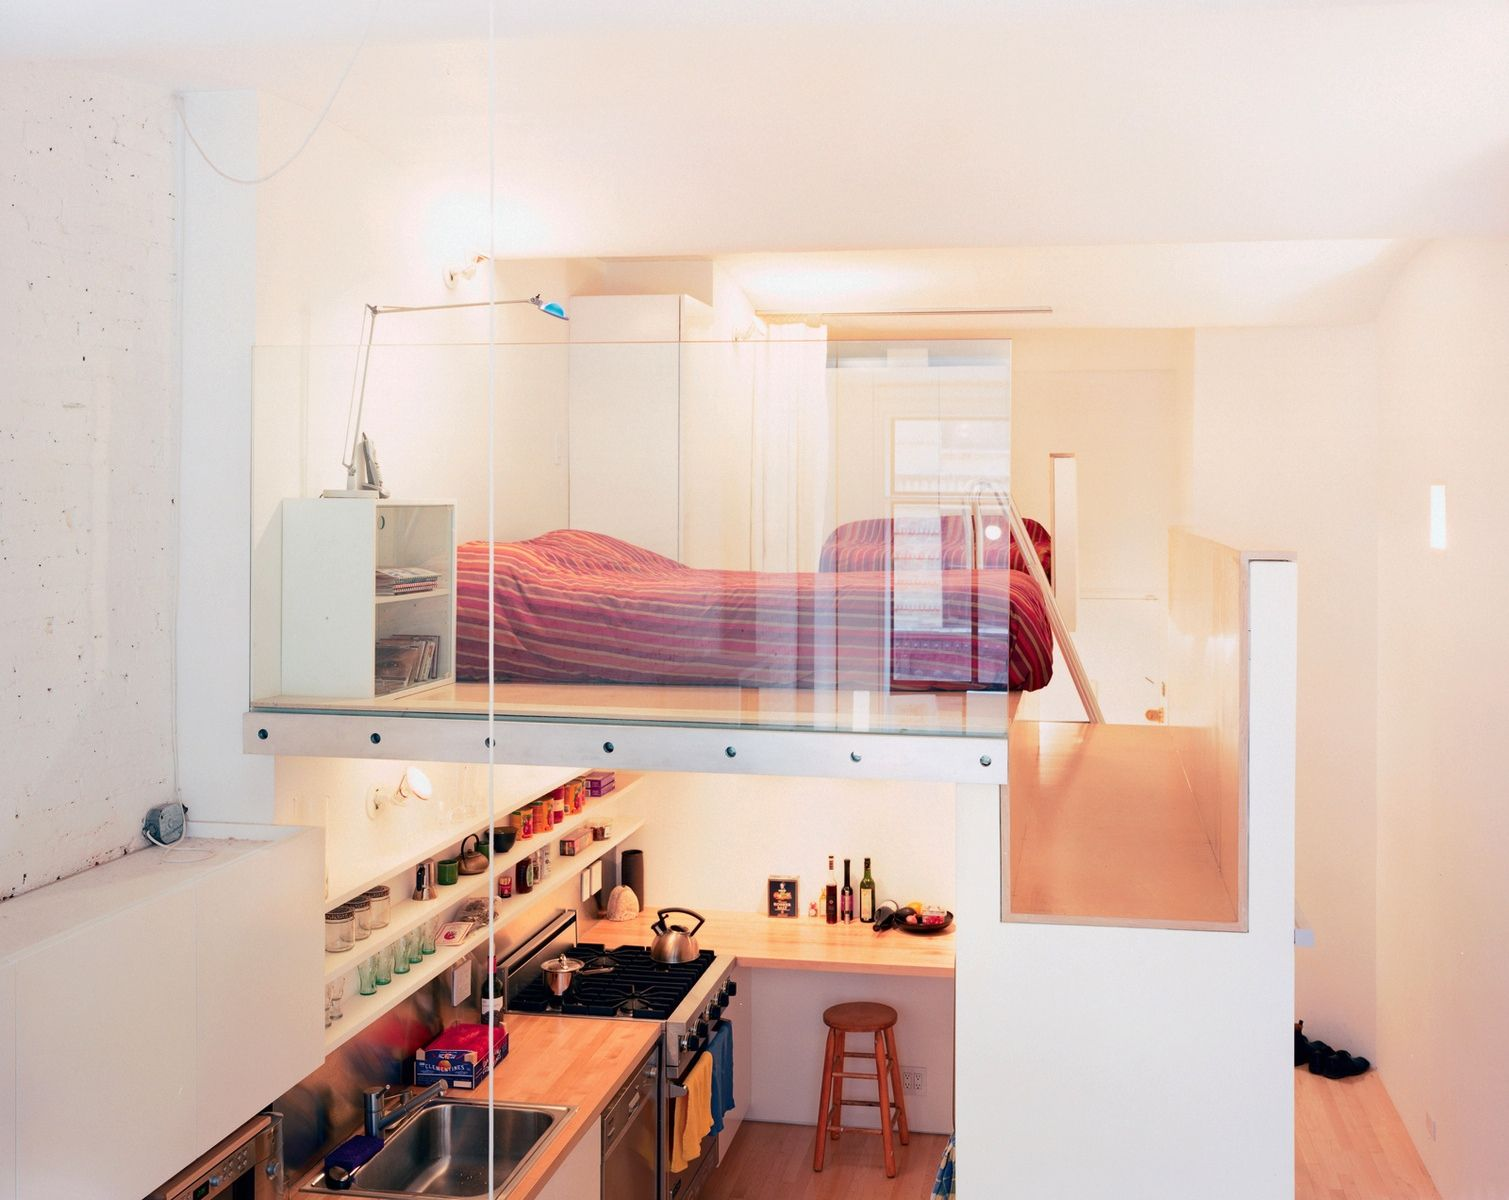 Space Saving Beds & Bedrooms | Mezzanine, Space saving beds and ...